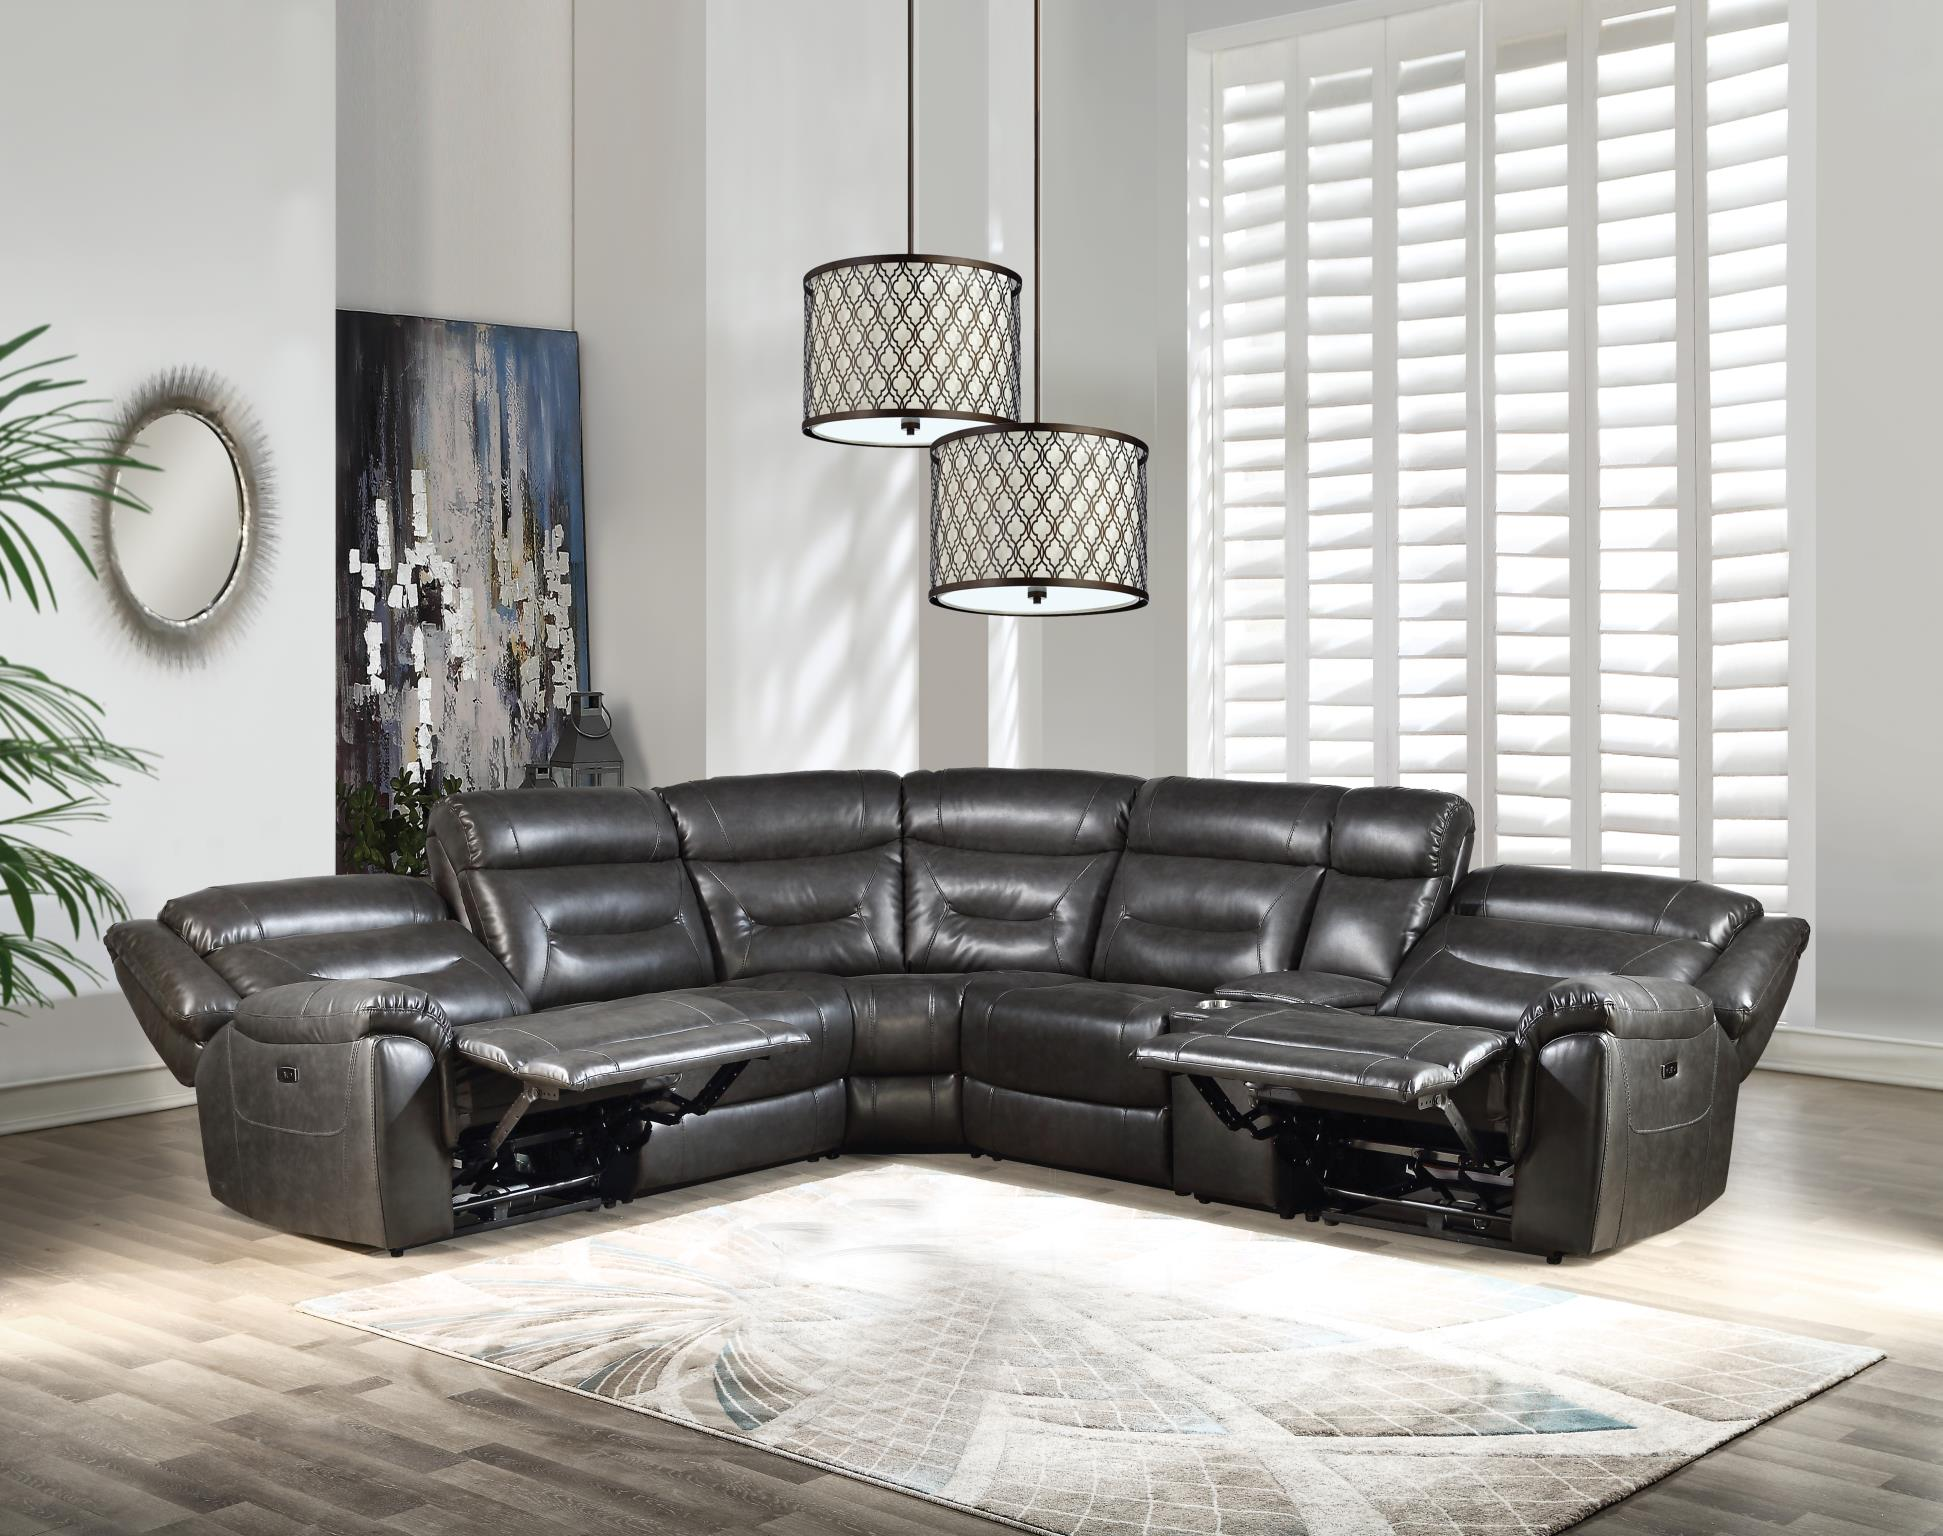 Complete Sectional Sofa w/ Reclined Seats